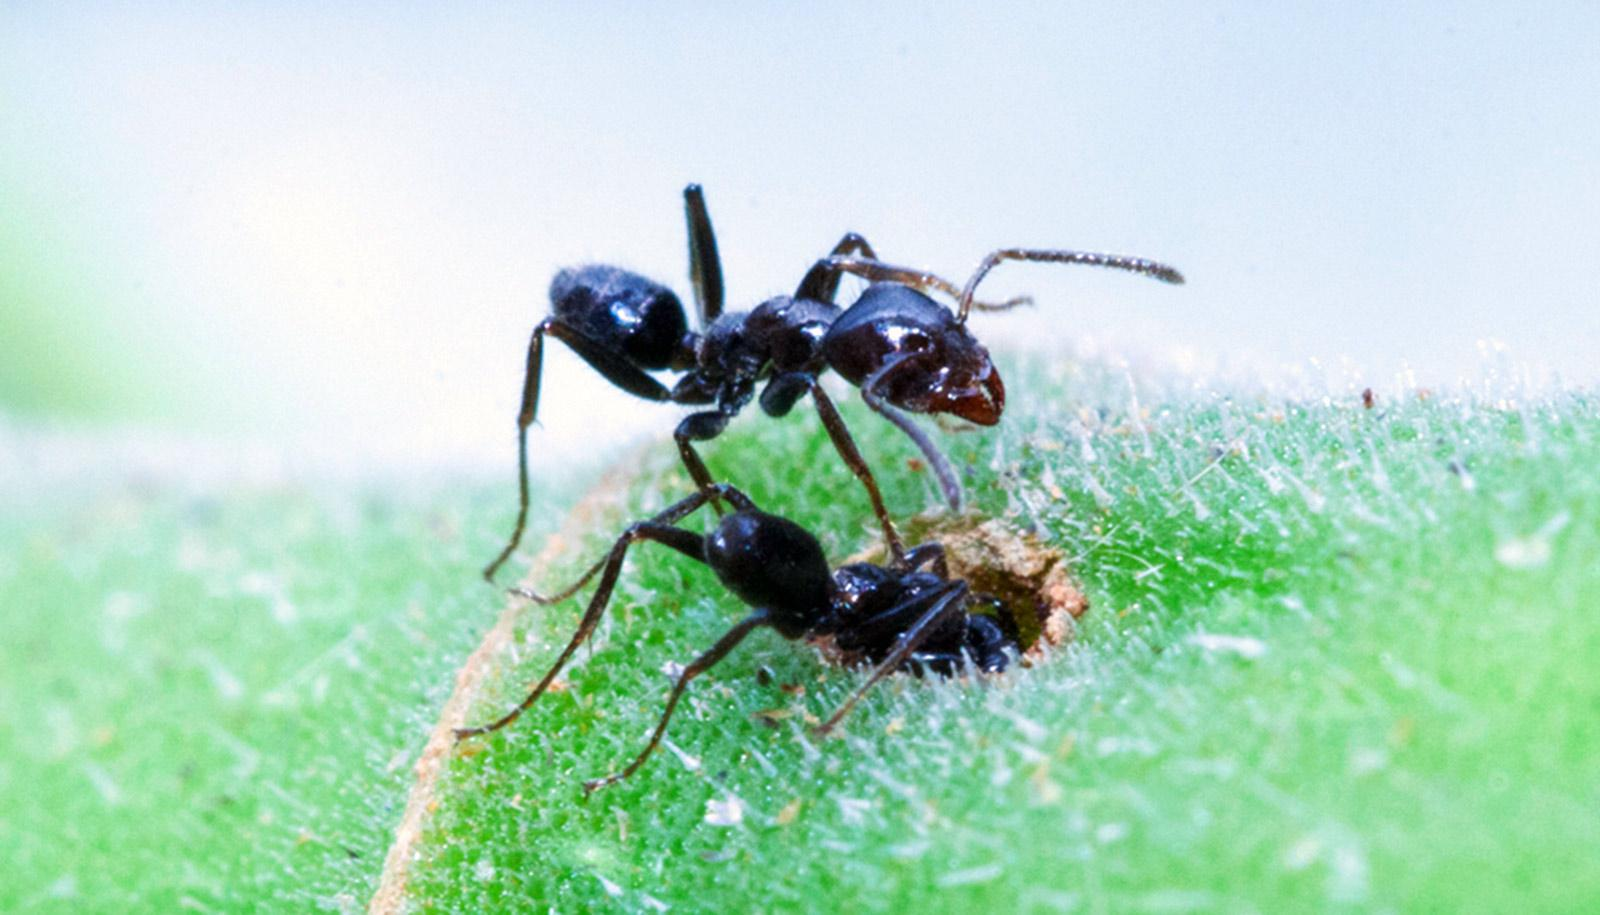 two ants, one of which has gone headfirst into a hole in green fuzzy surface